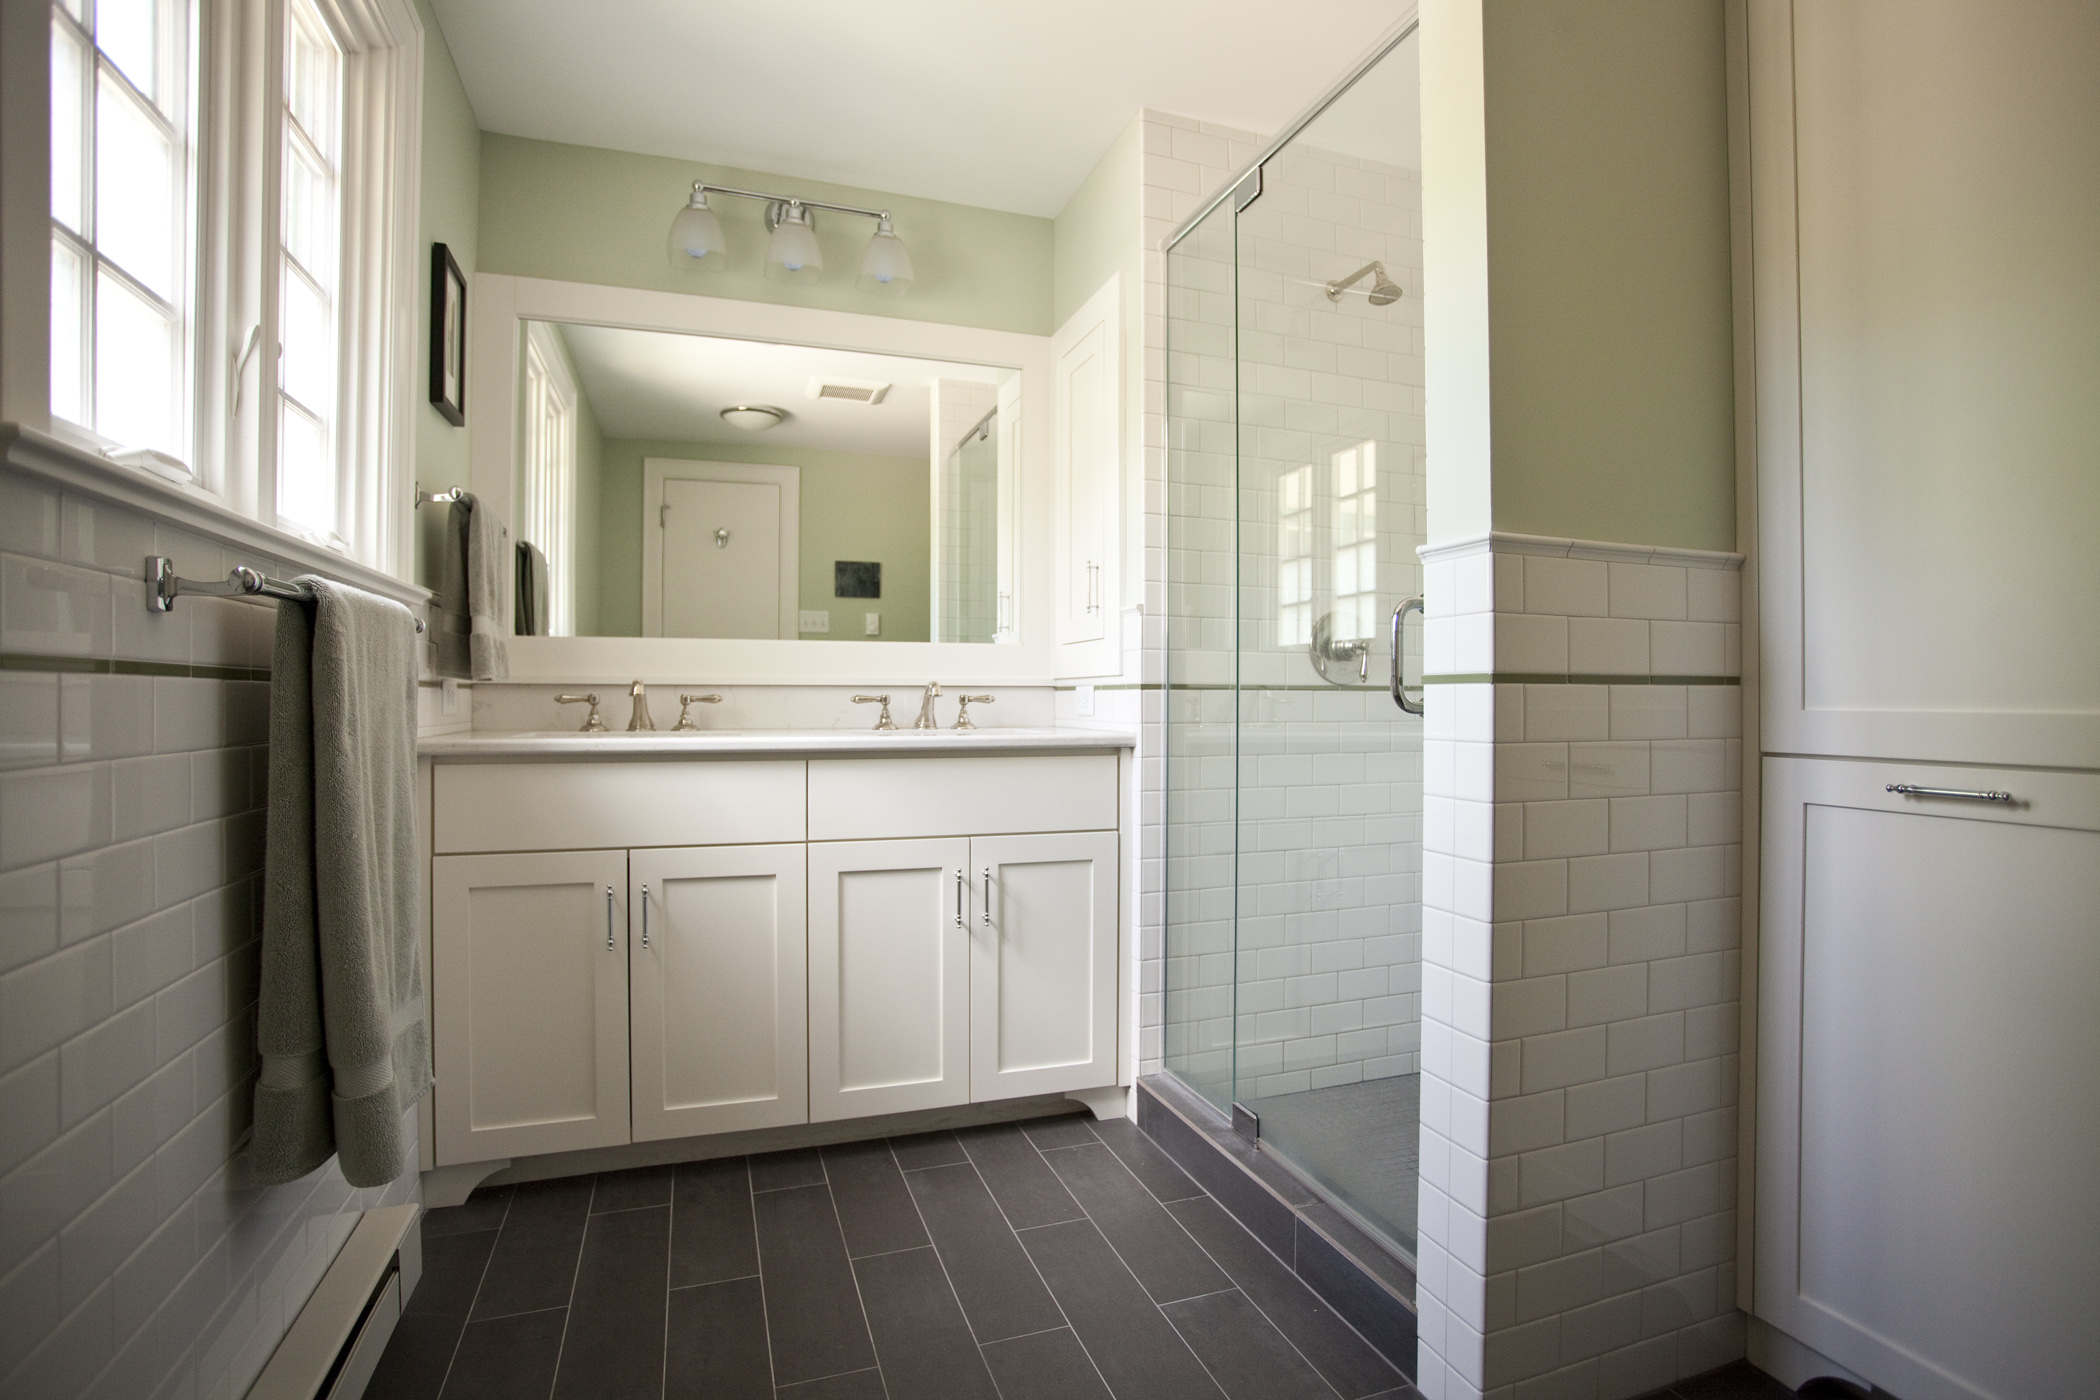 South minneapolis bathroom remodel trehus architects for Bathroom remodeling minneapolis mn